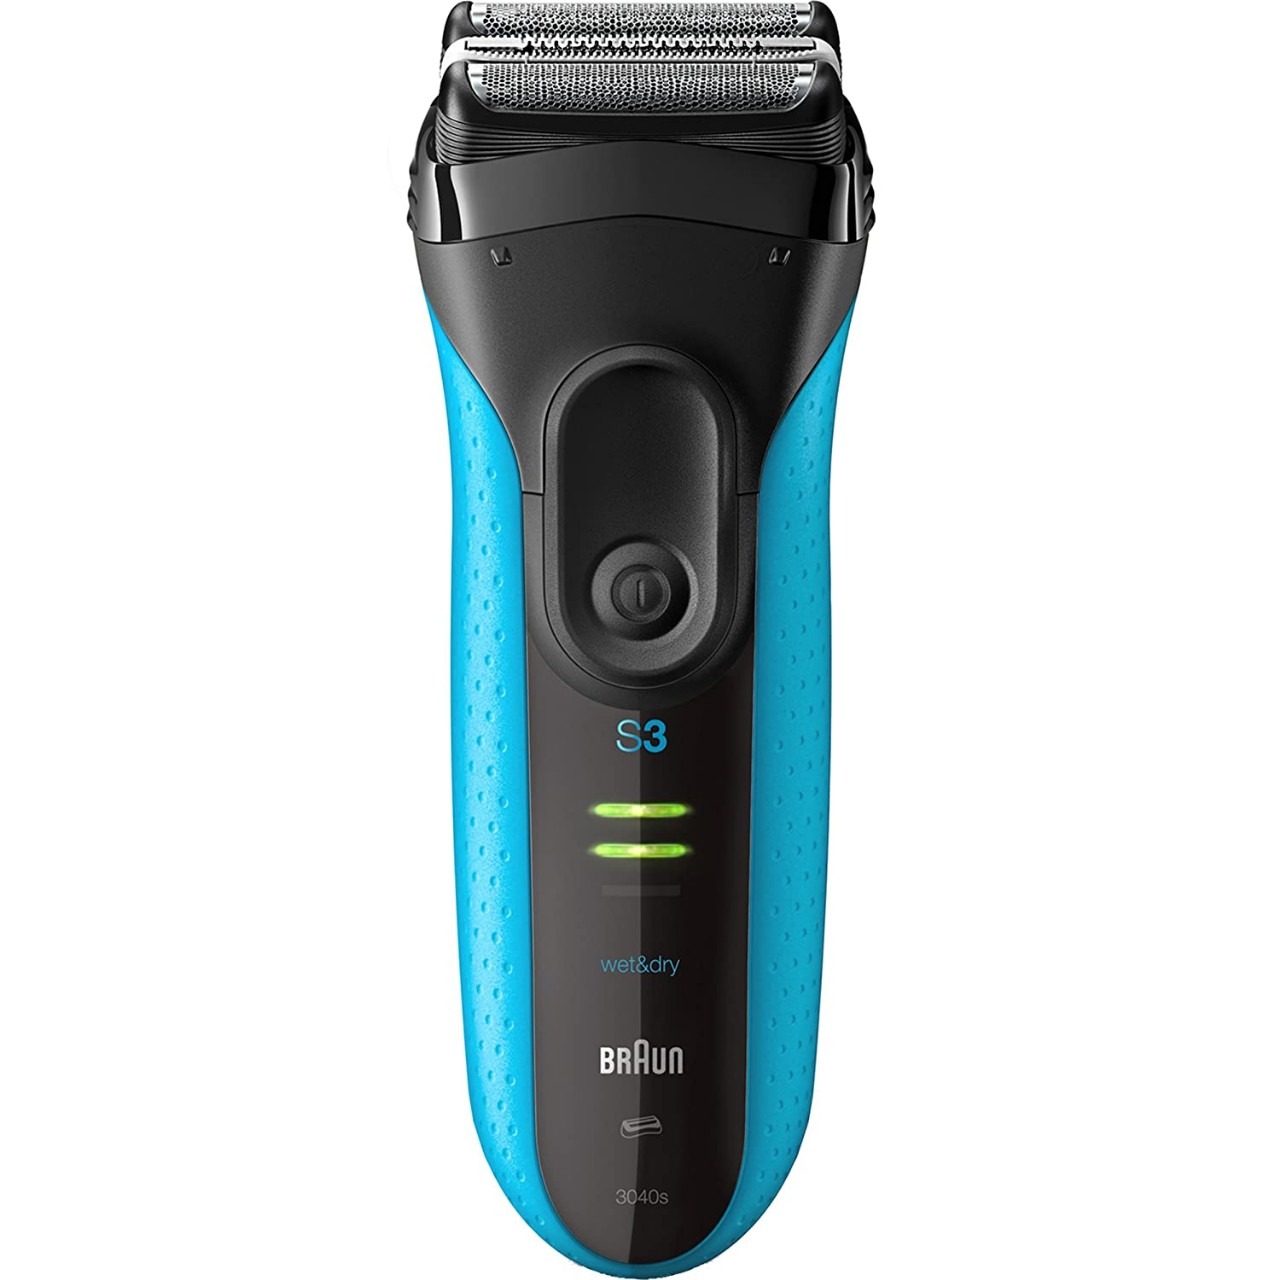 Braun Electric Razor for Men, Series 3 3040s Electric Shaver with Precision Trimmer, Rechargeable